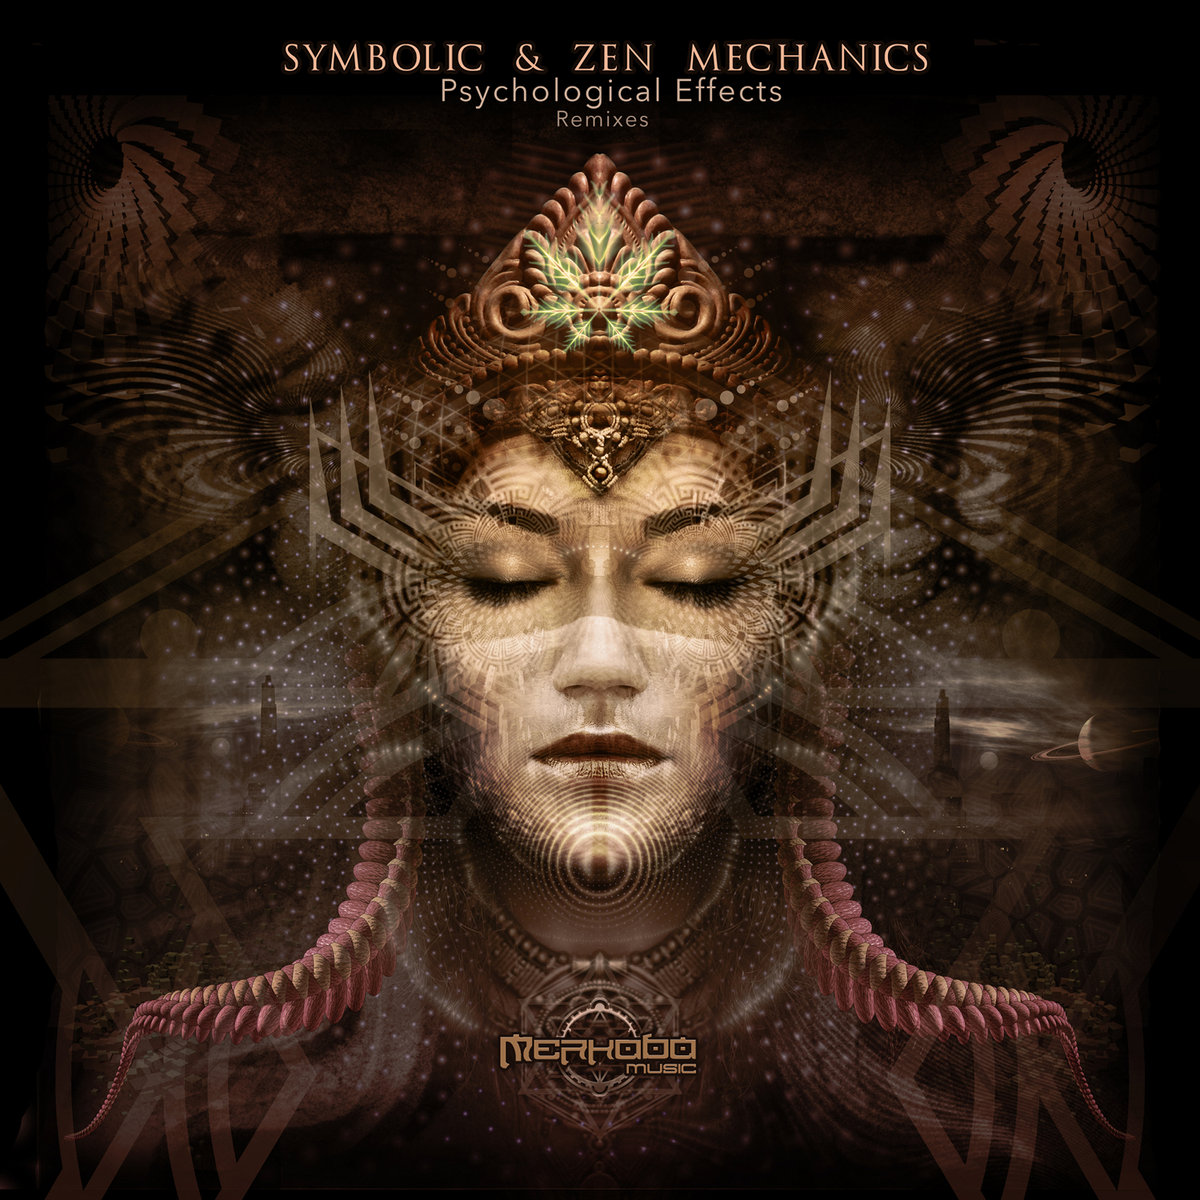 Symbolic & Zen Mechanics - Psychological Effects (Kalya Scintila Remix) @ 'Psychological Effects - Remixes' album (electronic, future bass)